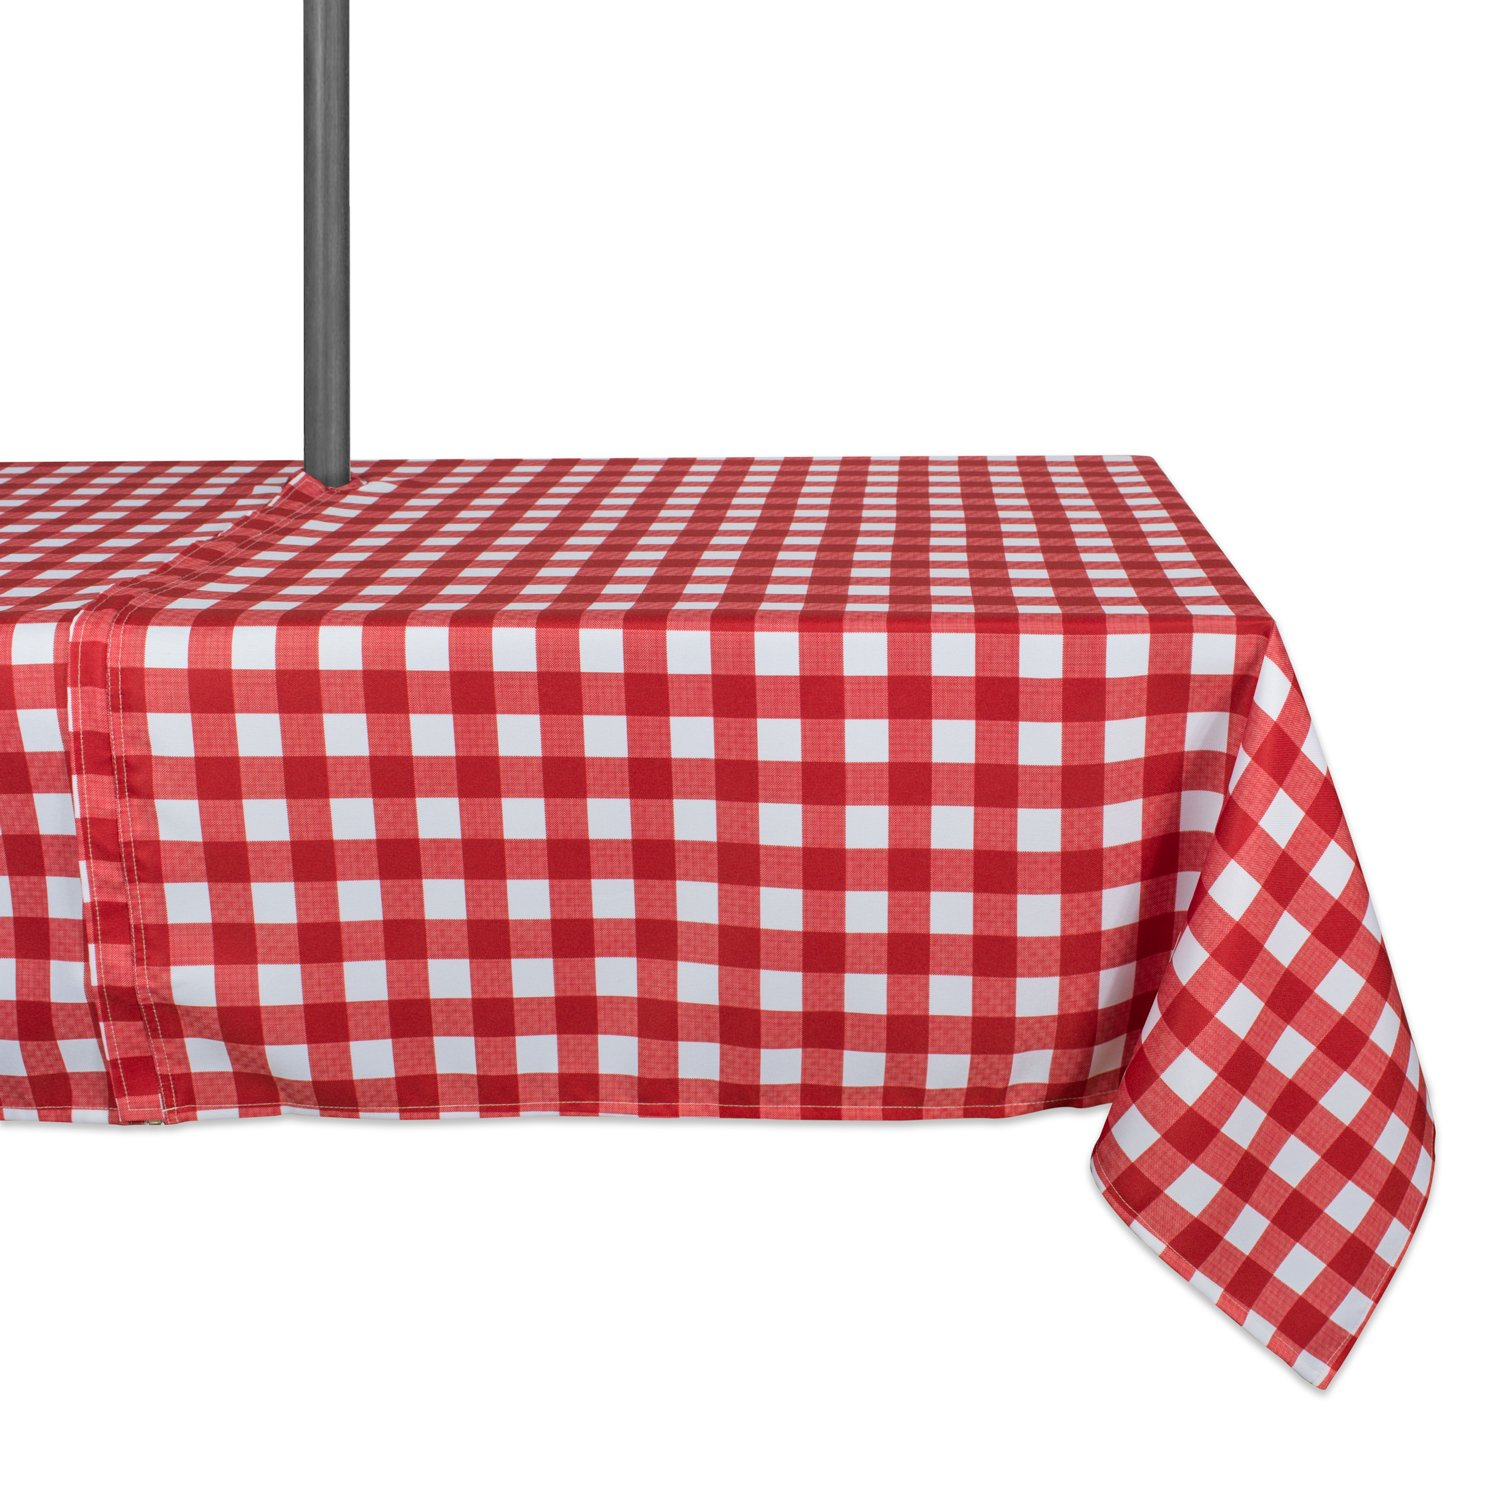 DII Spring & Summer Outdoor Tablecloth, Spill Proof and Waterproof with Zipper and Umbrella Hole, Host Backyard Parties, BBQs, Family Gatherings - (60x84 - Seats 6 to 8) Red Check